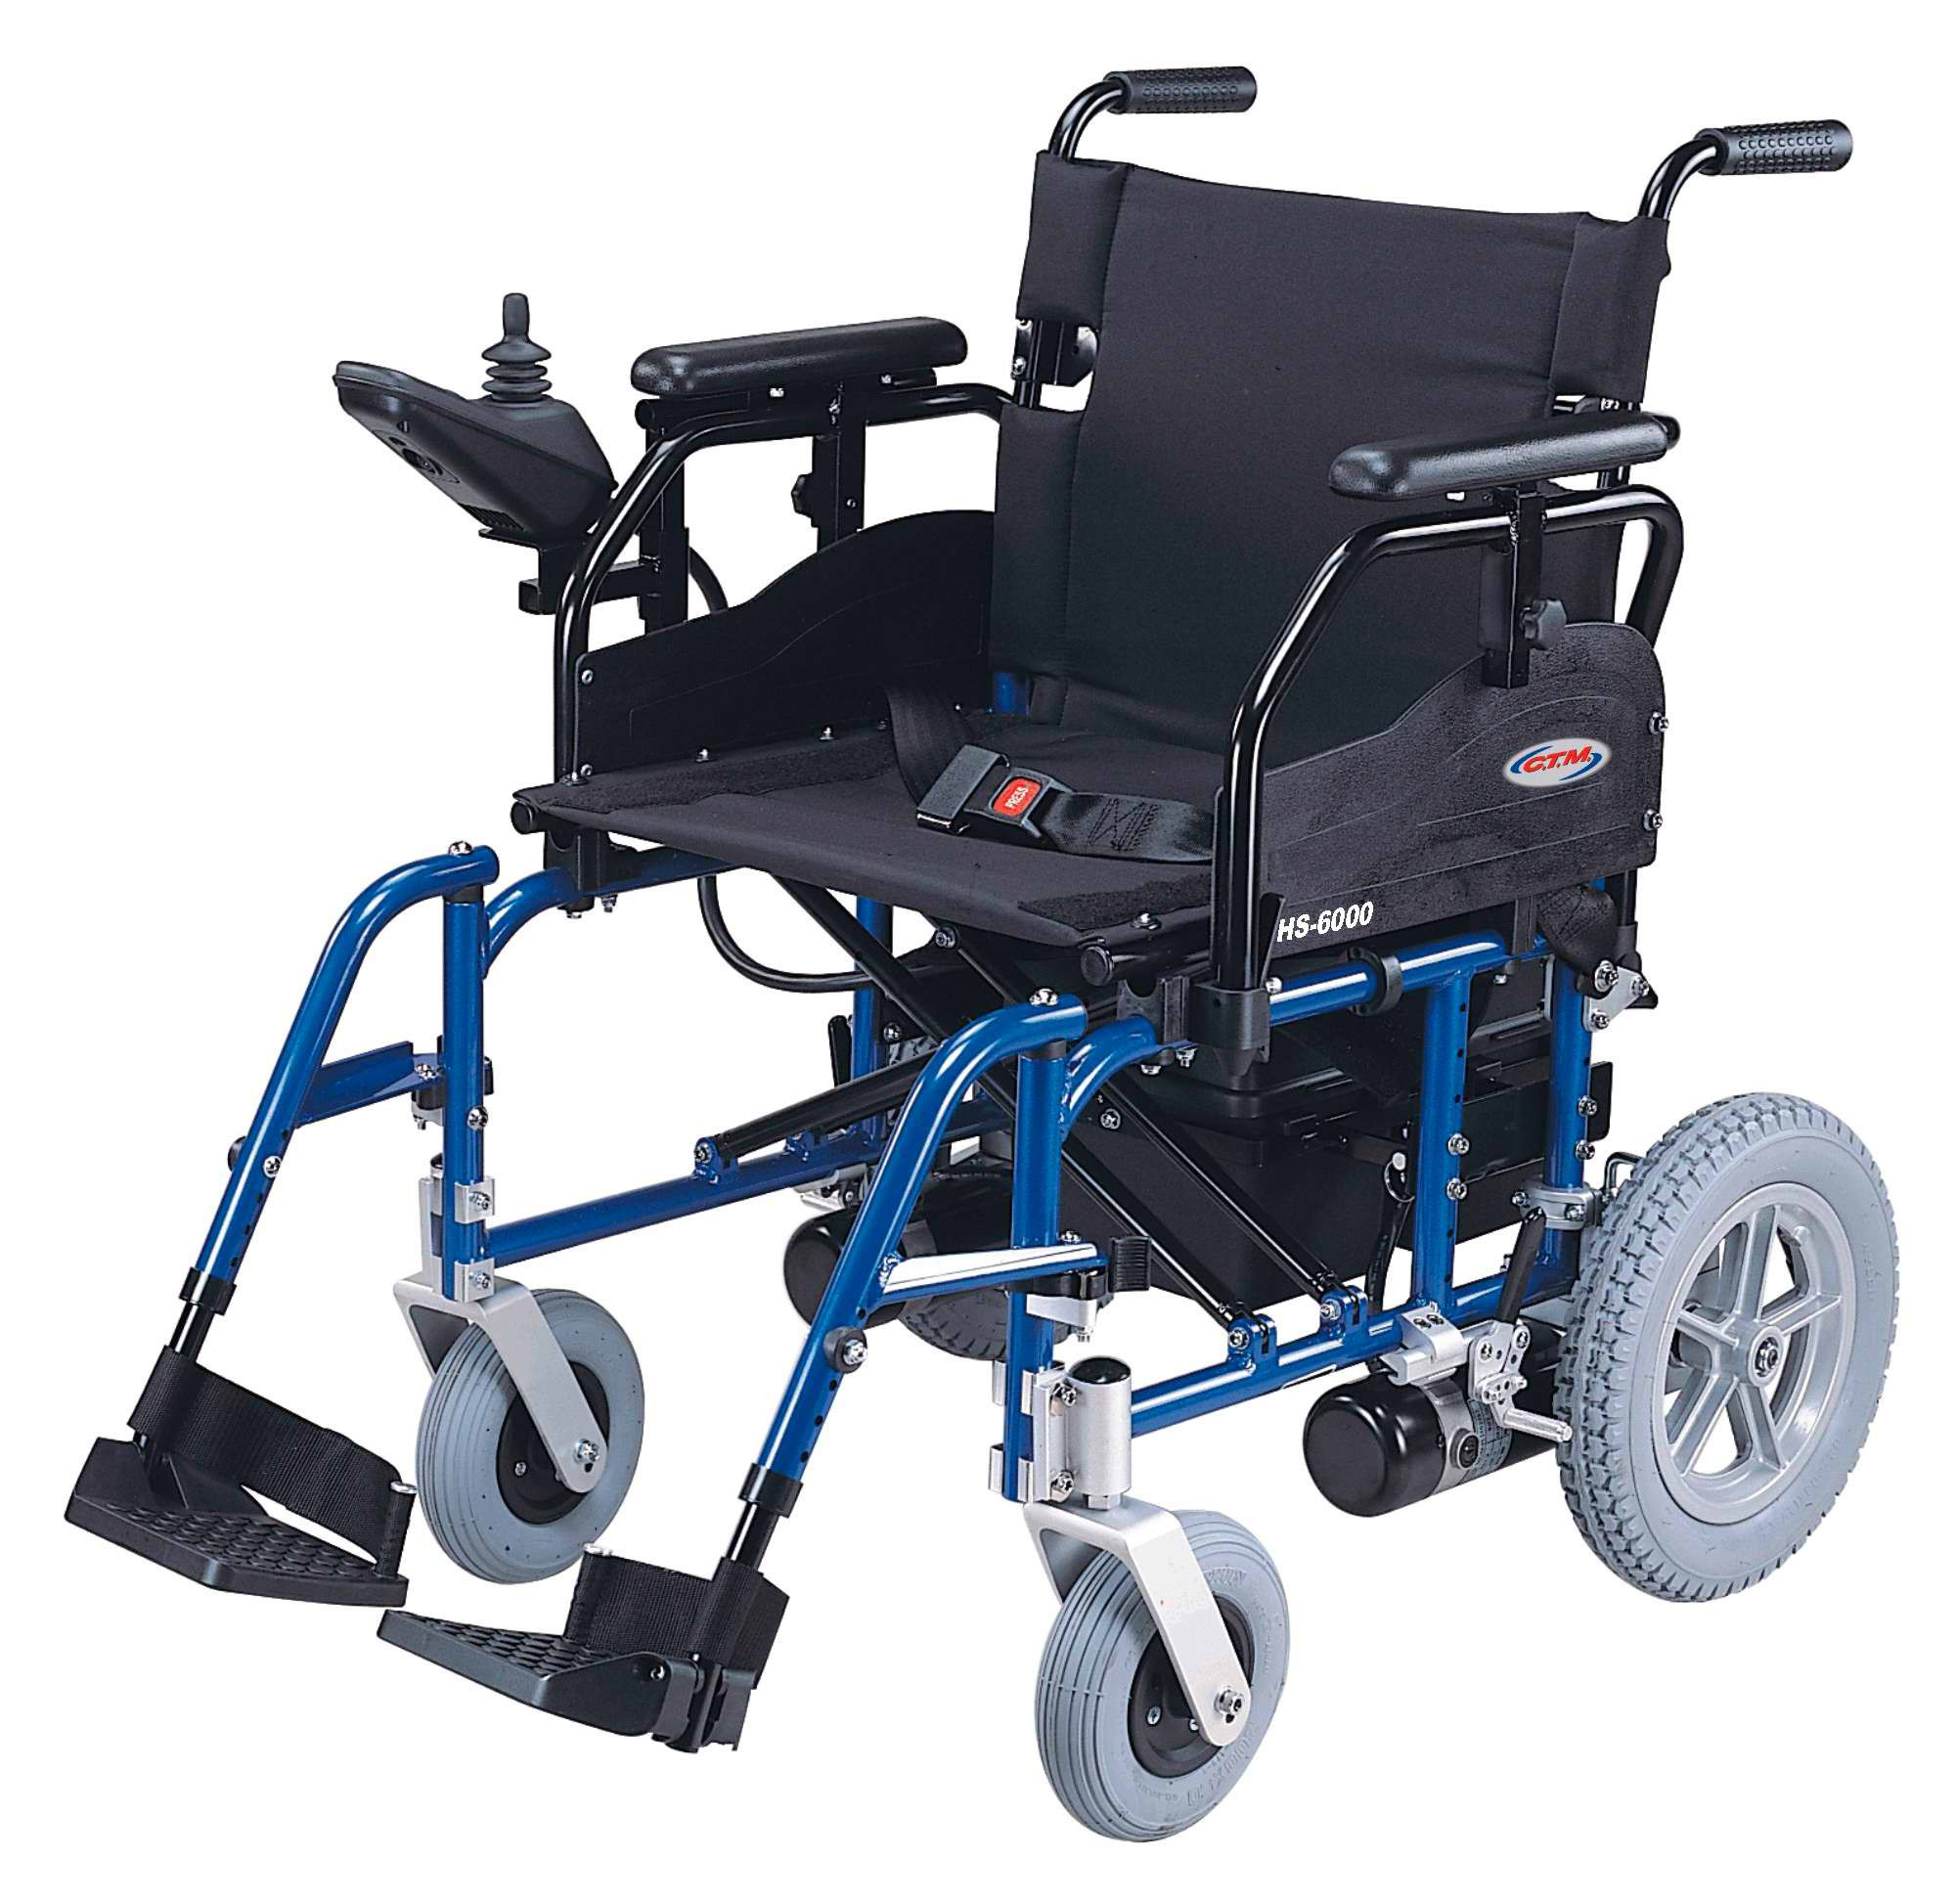 Electric Chair Mobility Ctm Hs 6200 Power Wheelchair For Sale Lowest Prices Tax